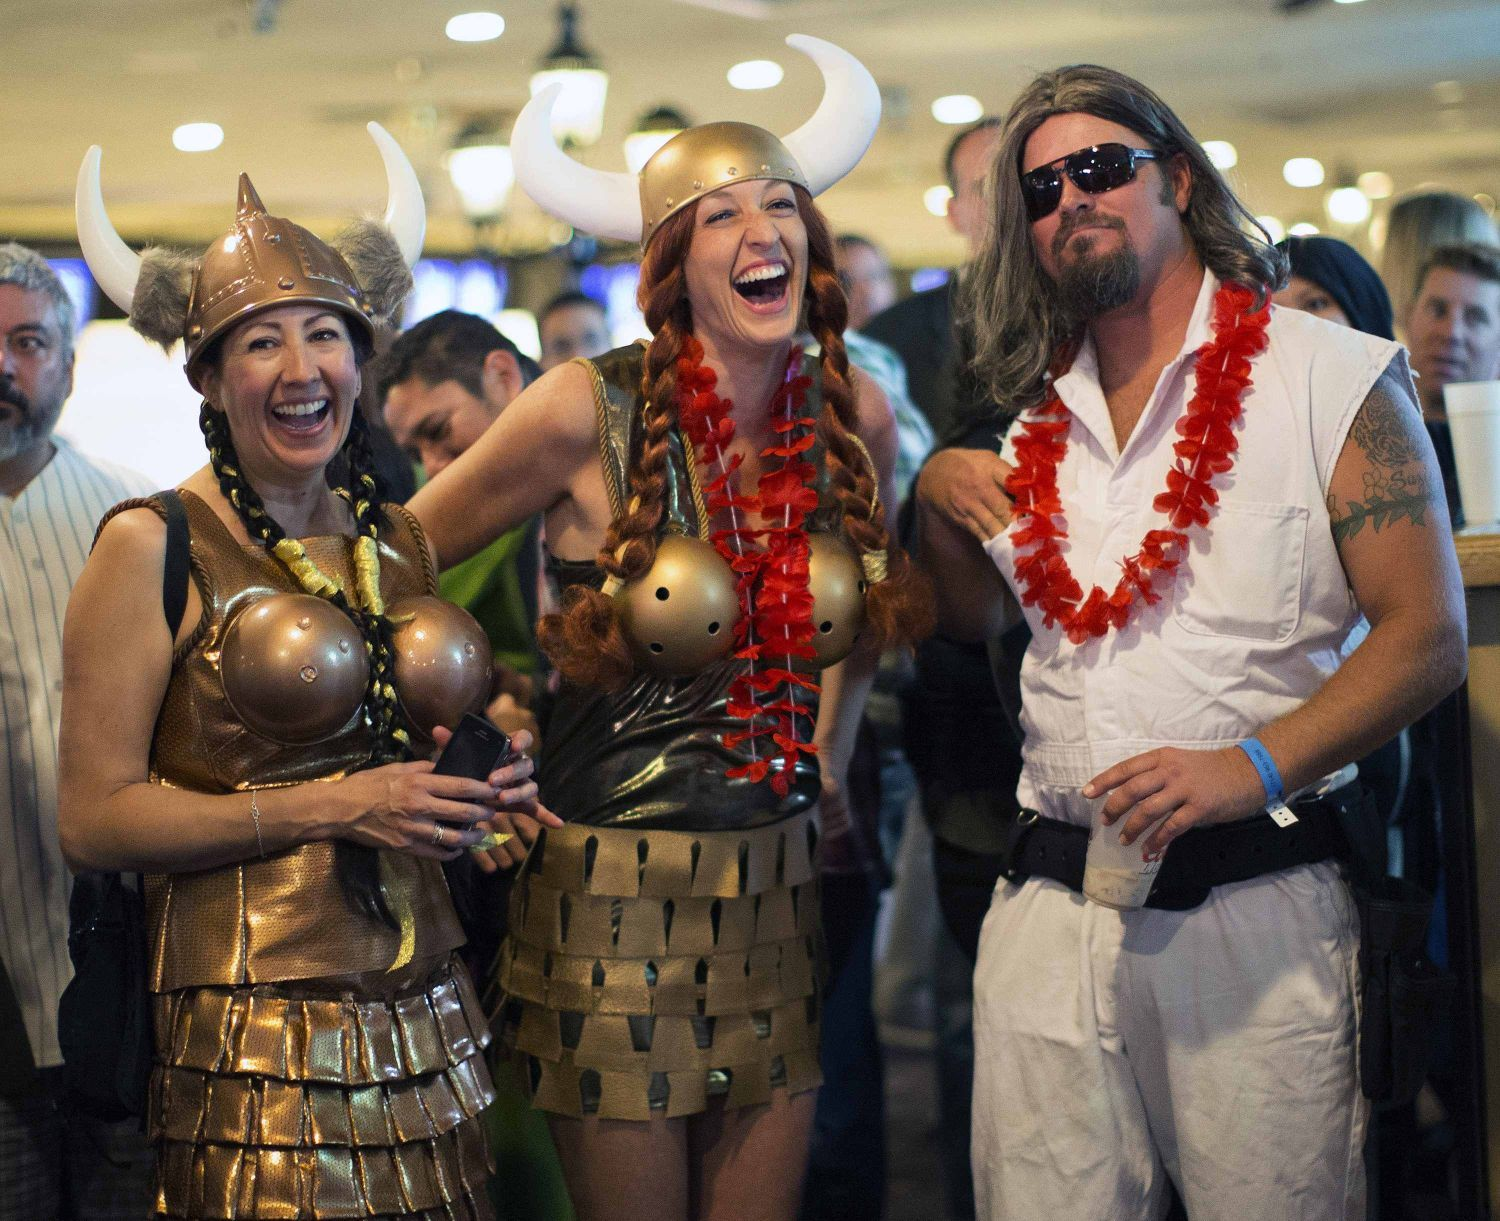 Enthusiasts wear costumes to resemble characters from the movie  The Big Lebowski  during the Lebowski Fest LA Bowling Party in Fountain Valley  sc 1 st  Pinterest & Enthusiasts wear costumes to resemble characters from the movie